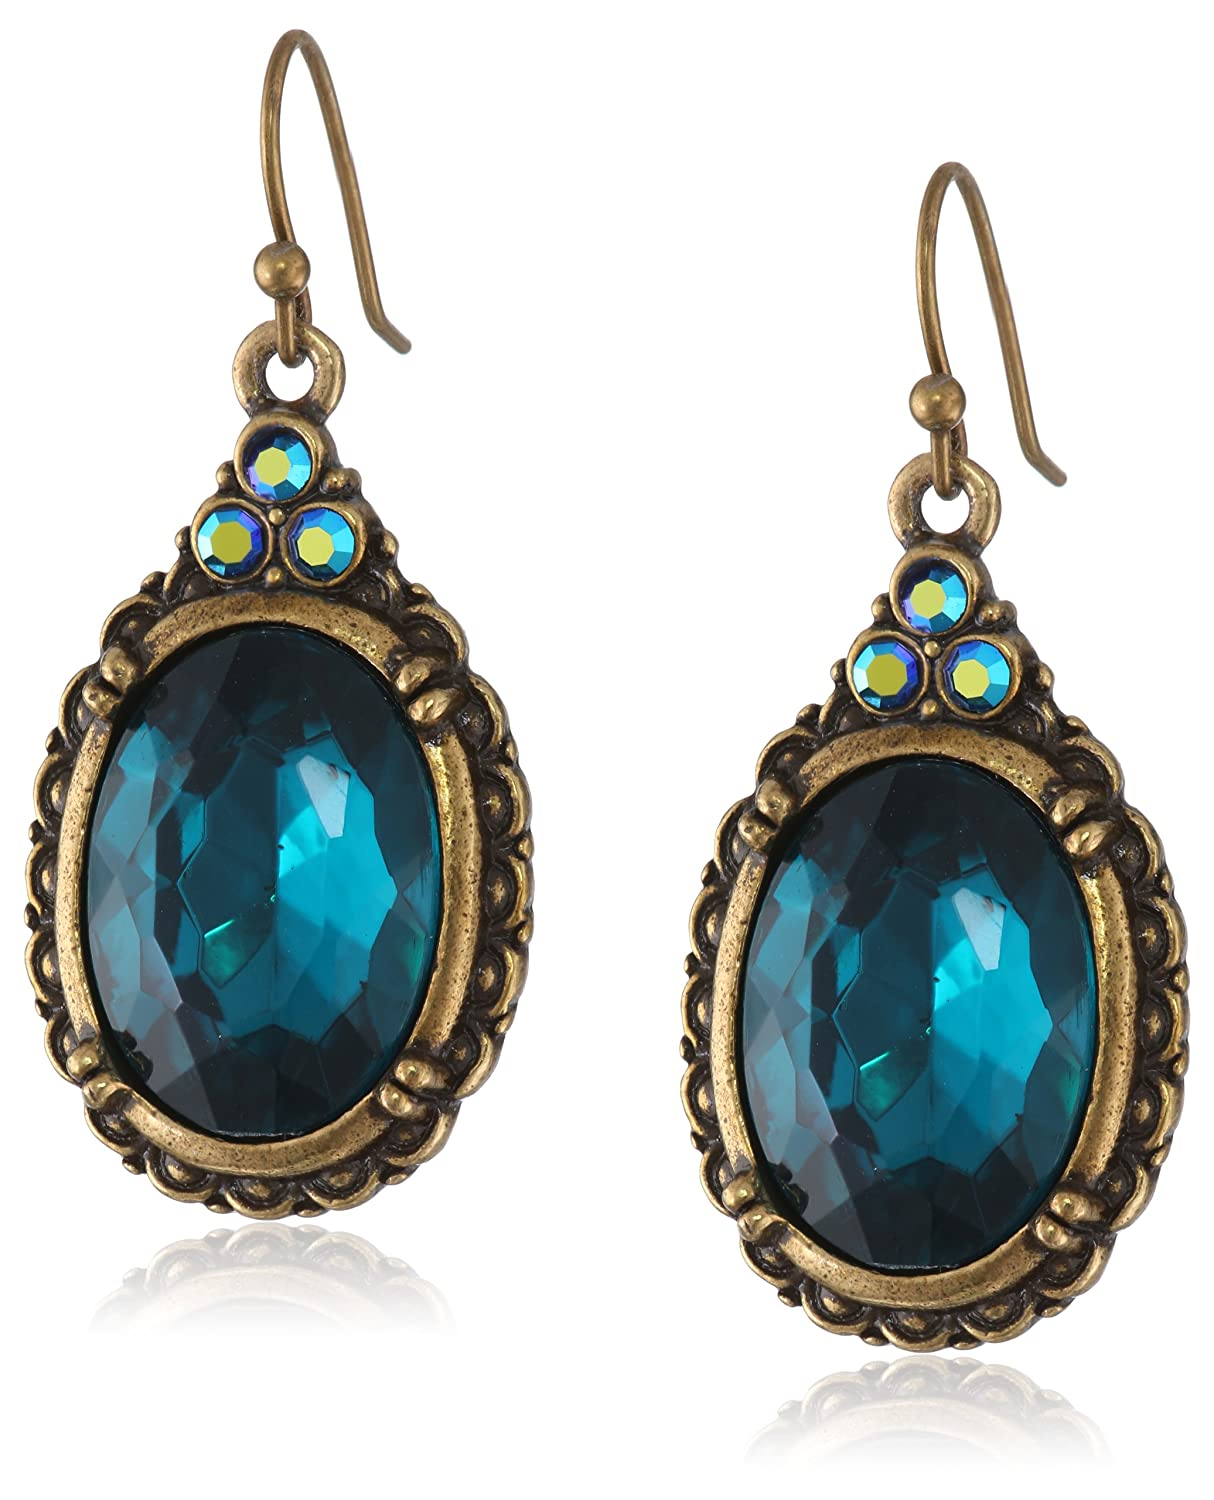 Victorian Costume Jewelry to Wear with Your Dress 1928 Jewelry Crystal Oval Drop Earrings $25.19 AT vintagedancer.com